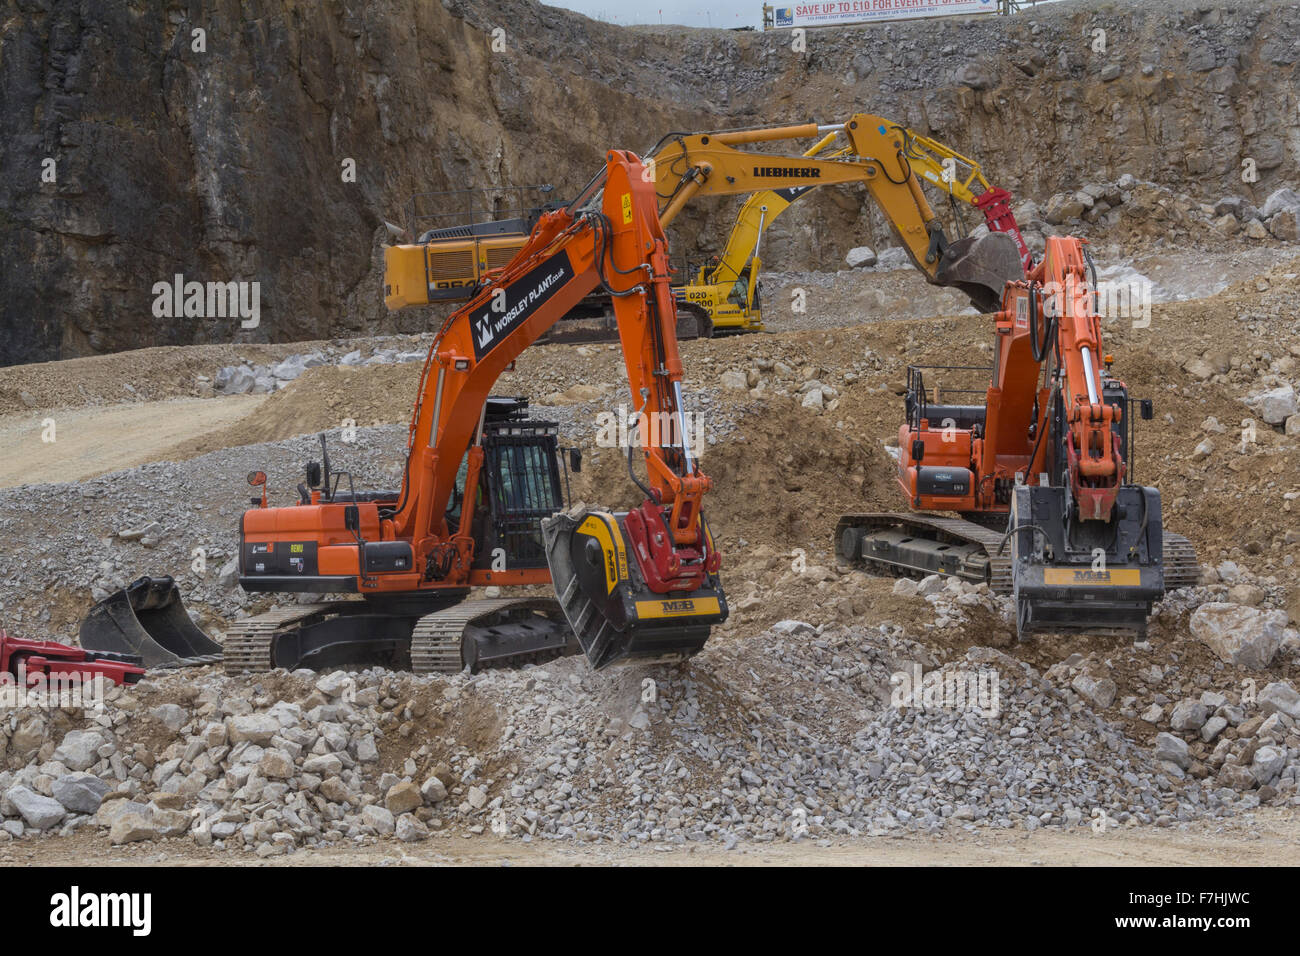 Demonstration of excavators at Hillhead Quarrying Recycling and Construction Exhibition - Stock Image